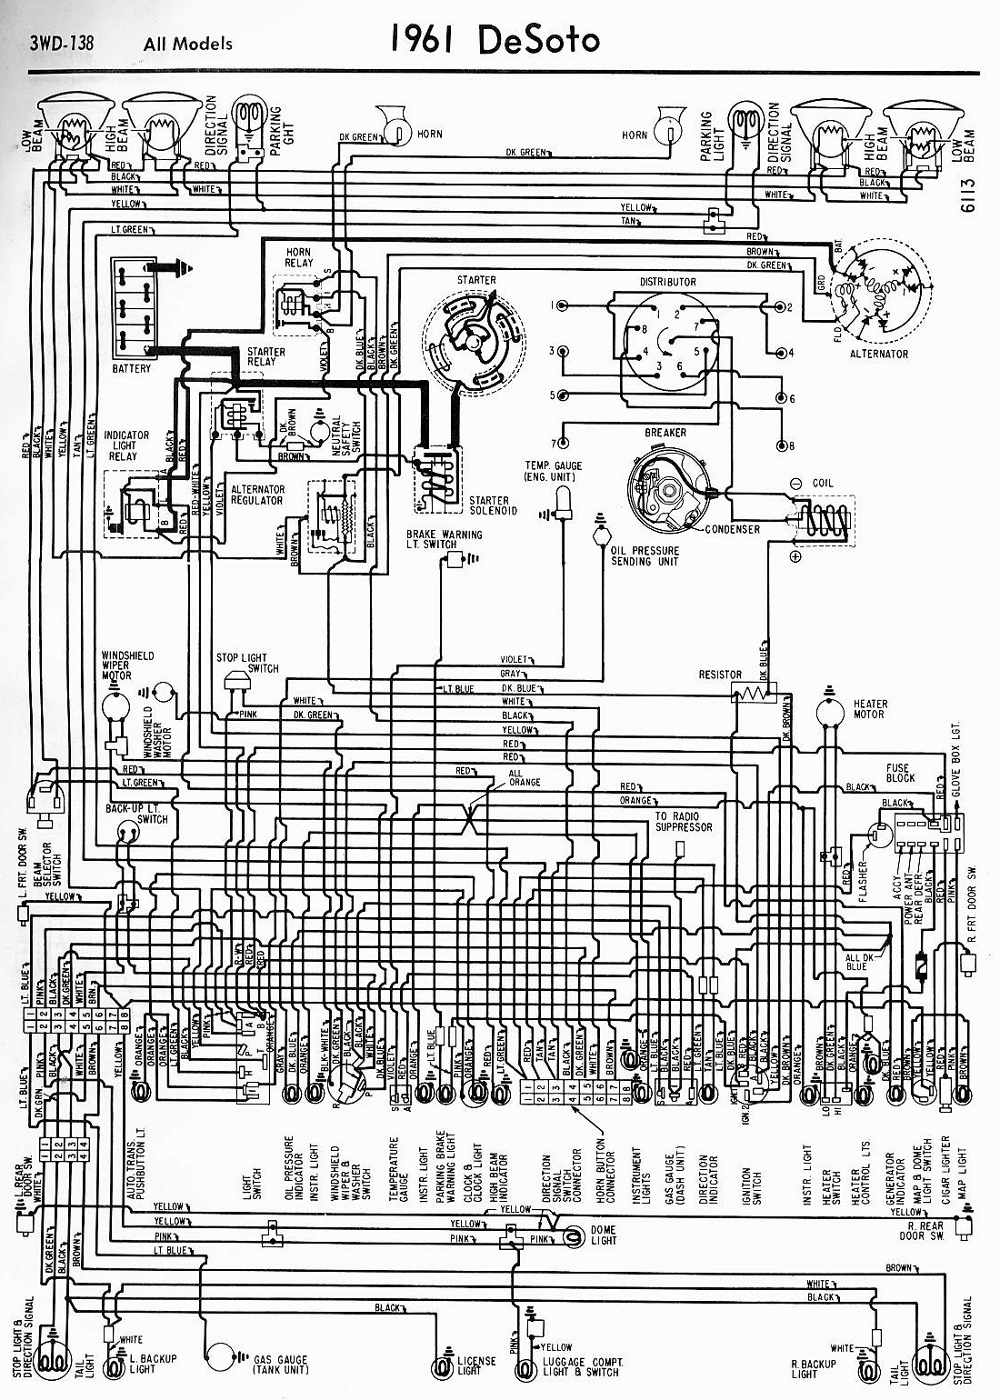 wiring diagrams of 1961 desoto all models?t=1508403749 de soto car manuals, wiring diagrams pdf & fault codes 1941 desoto wiring diagram at reclaimingppi.co